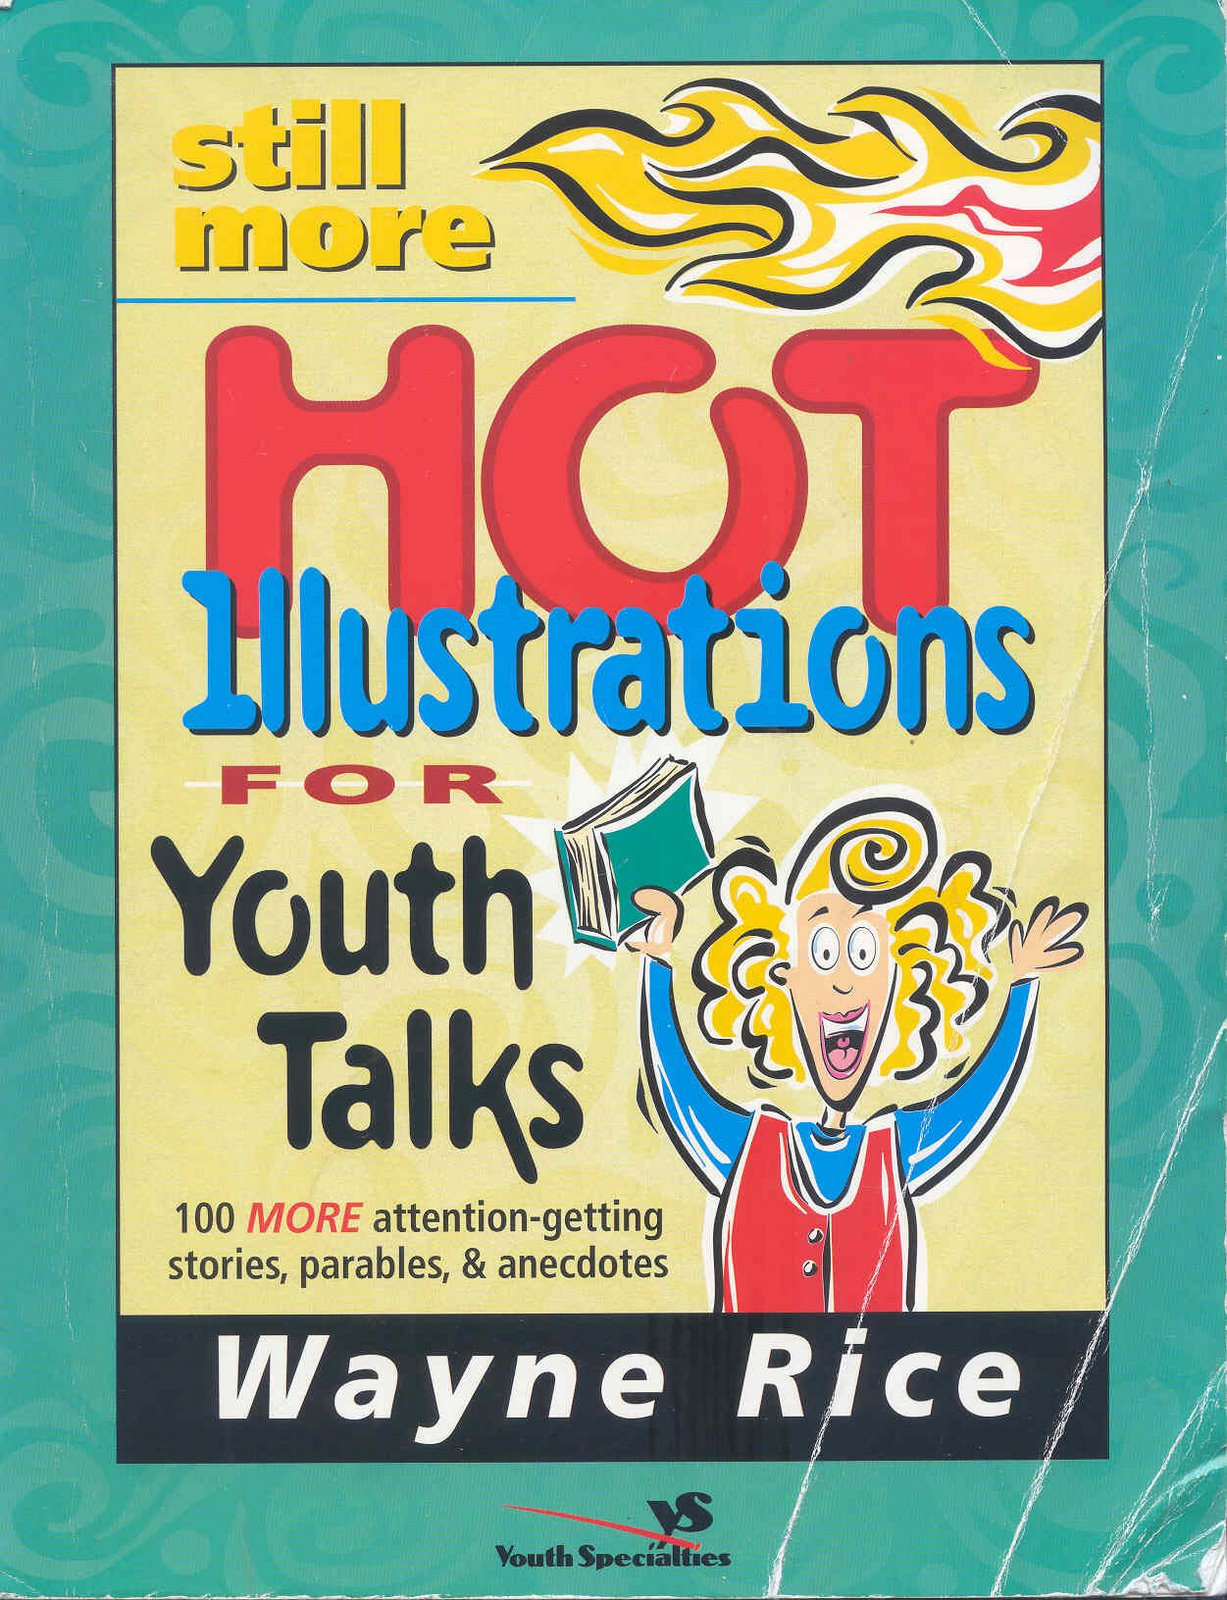 Found in Still More Hot Illustrations For Youth Talks by Wayne Rice,  Zondervan, 1999, ISBN 0310224640, page 67 (pictured at right).